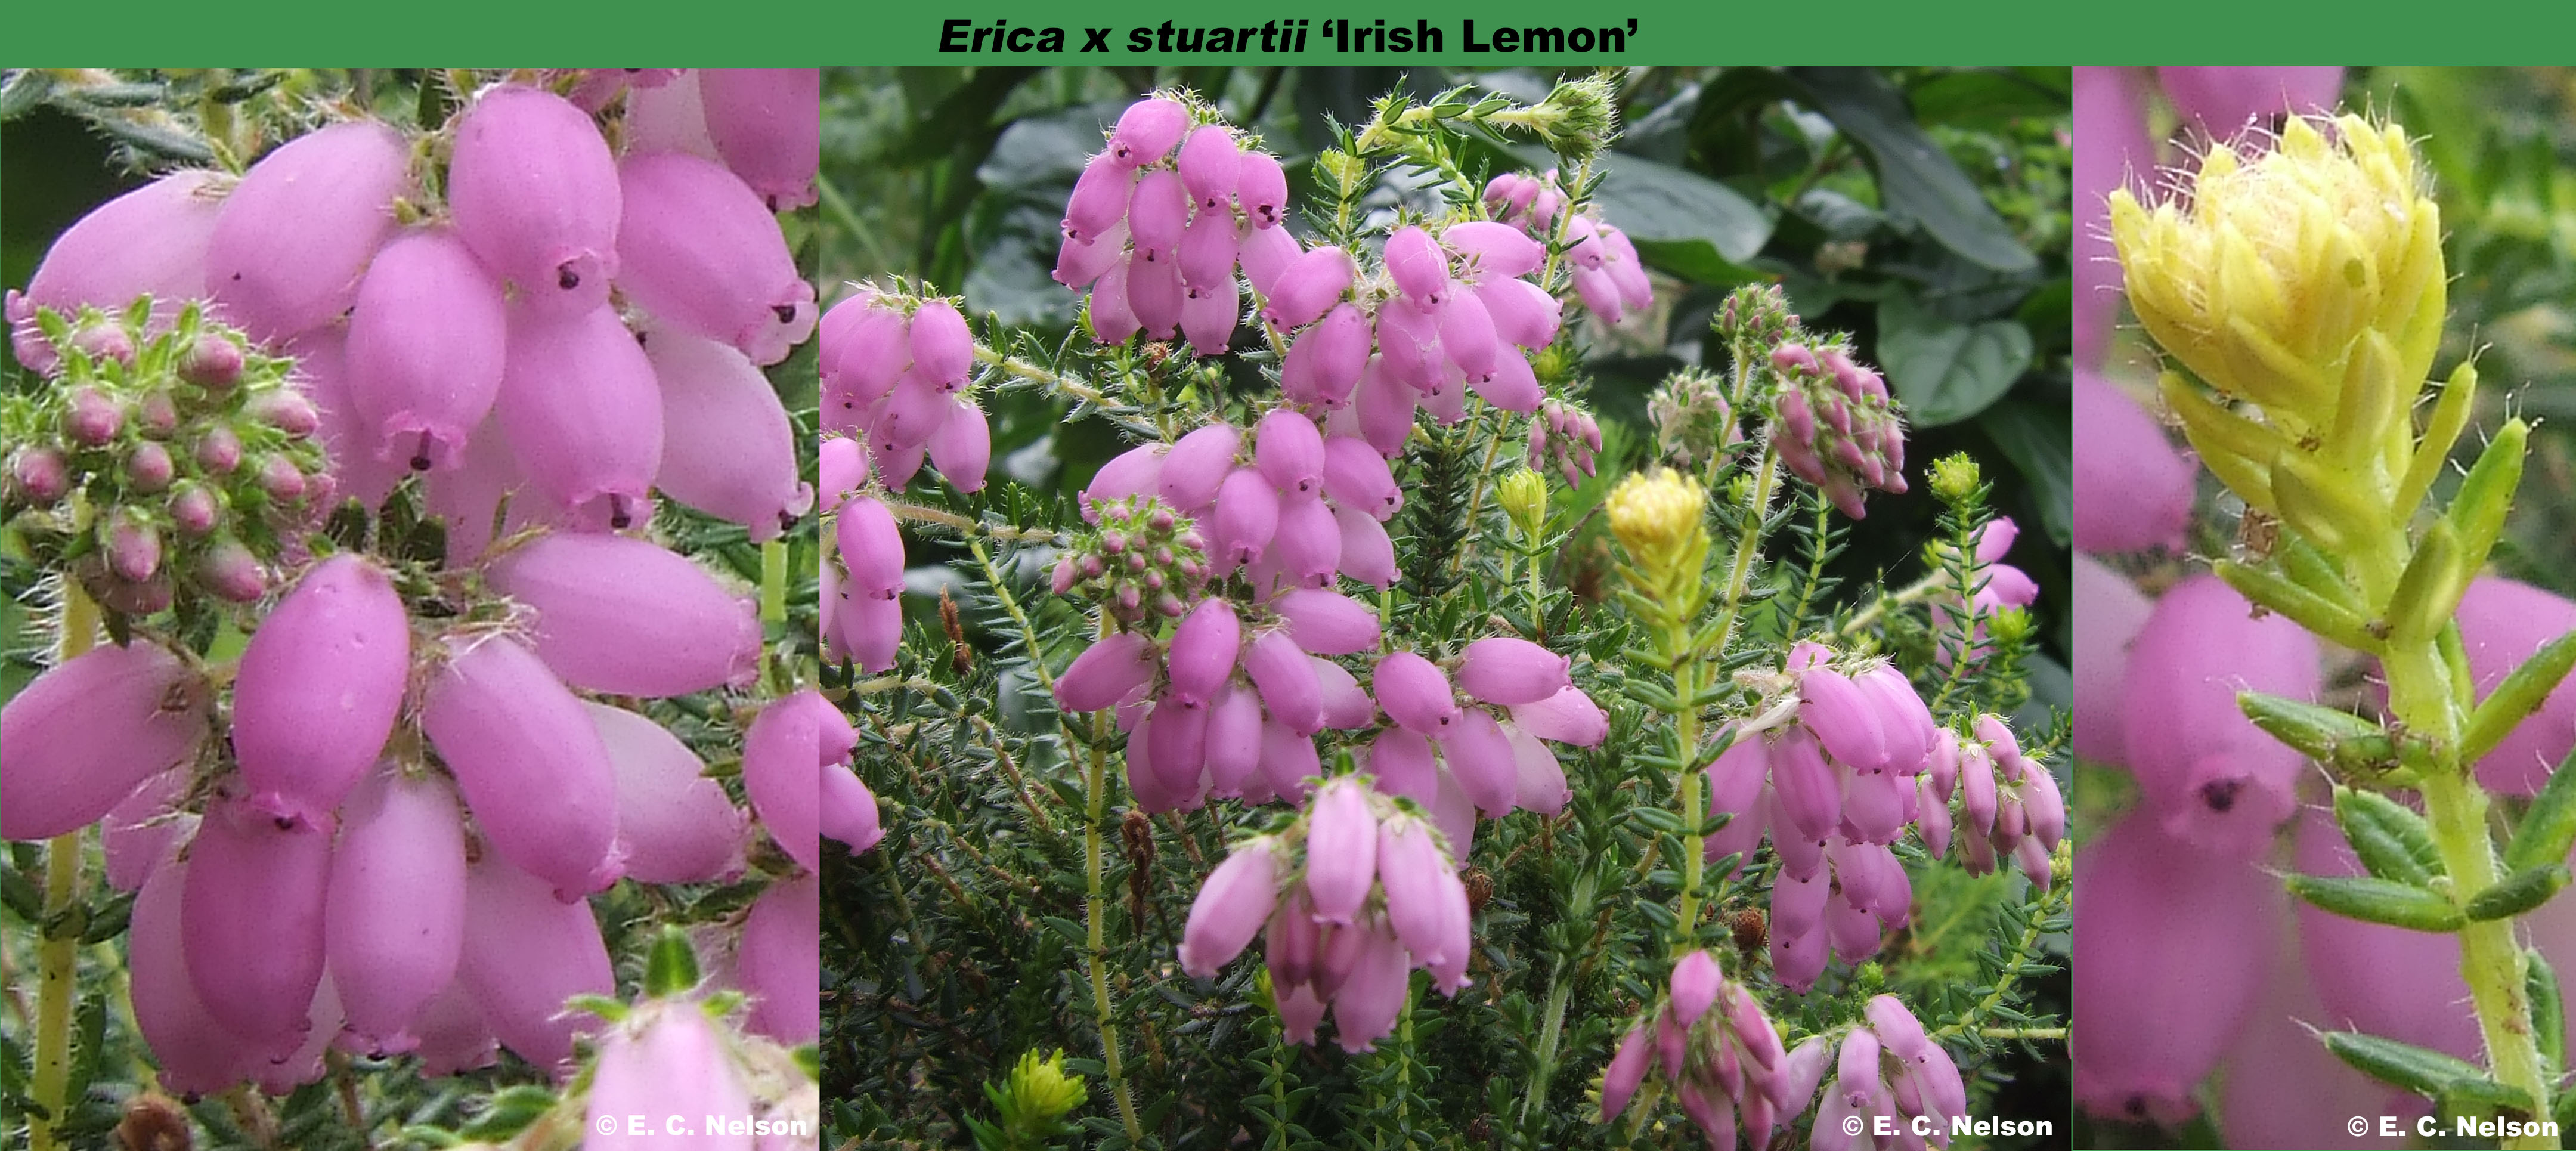 'Irish Lemon'